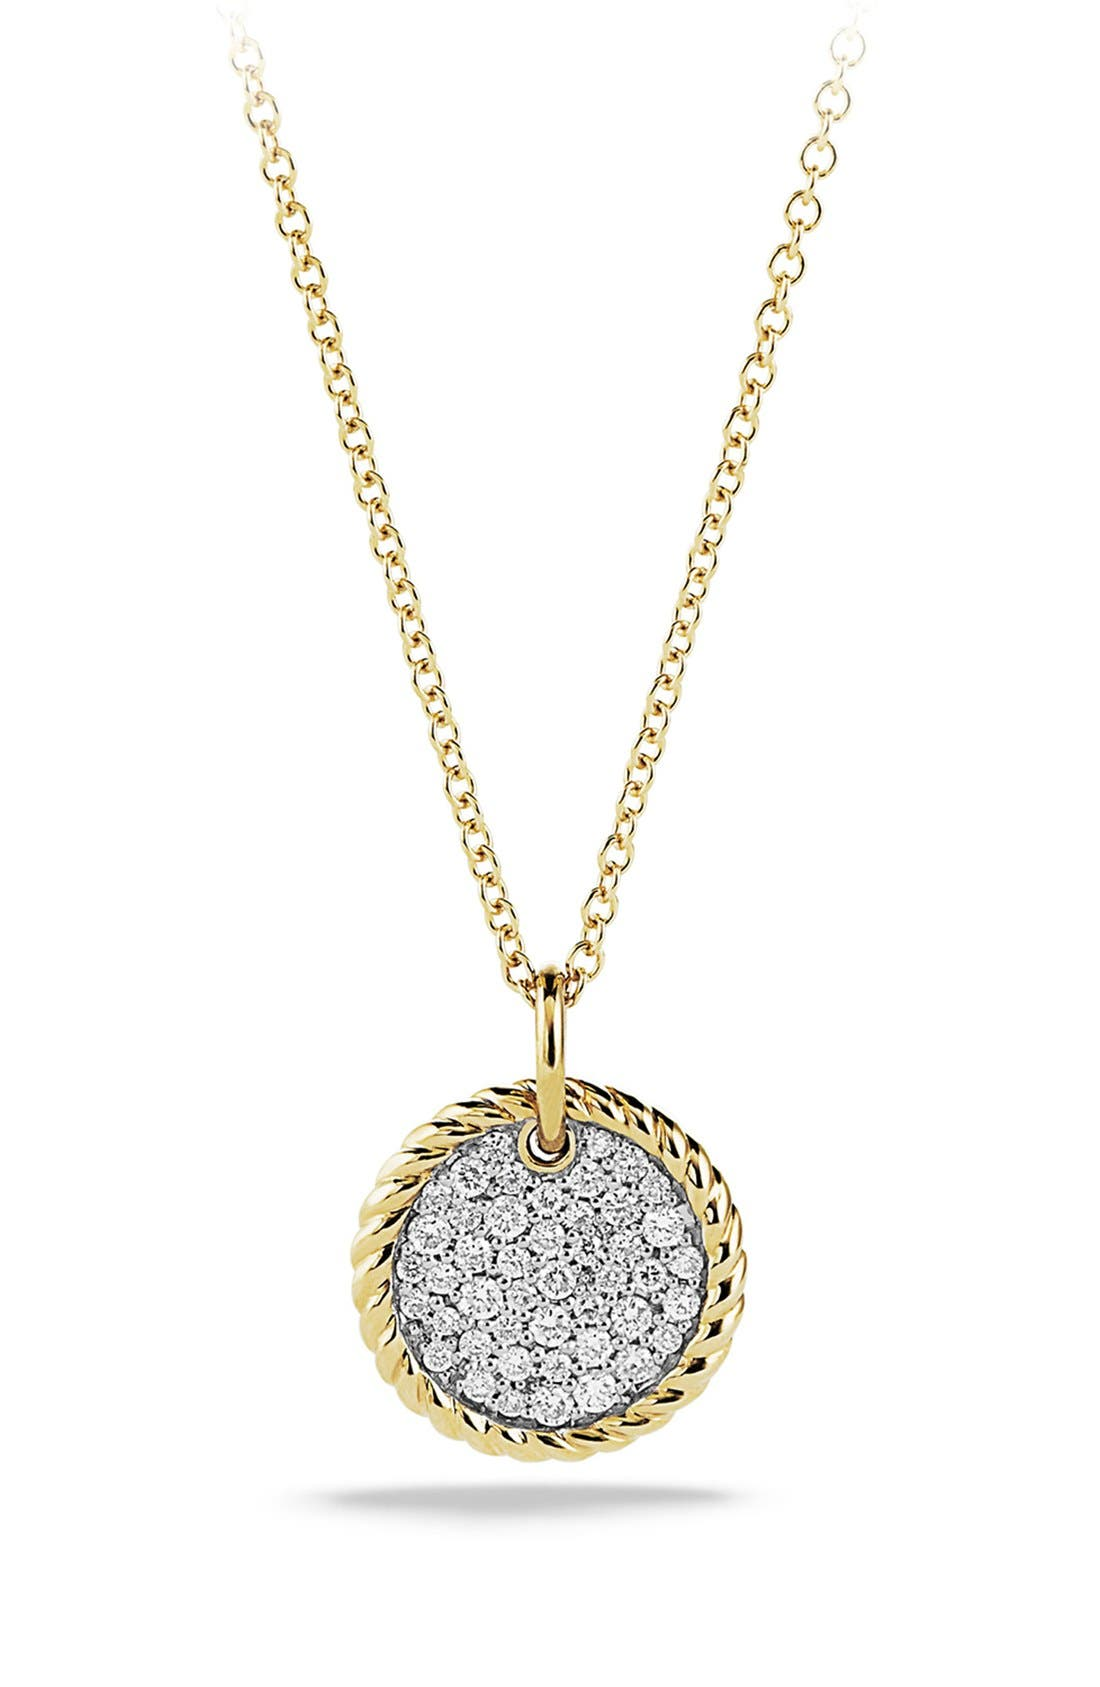 Main Image - David Yurman 'Cable Collectibles' Pavé Charm with Diamonds in Gold